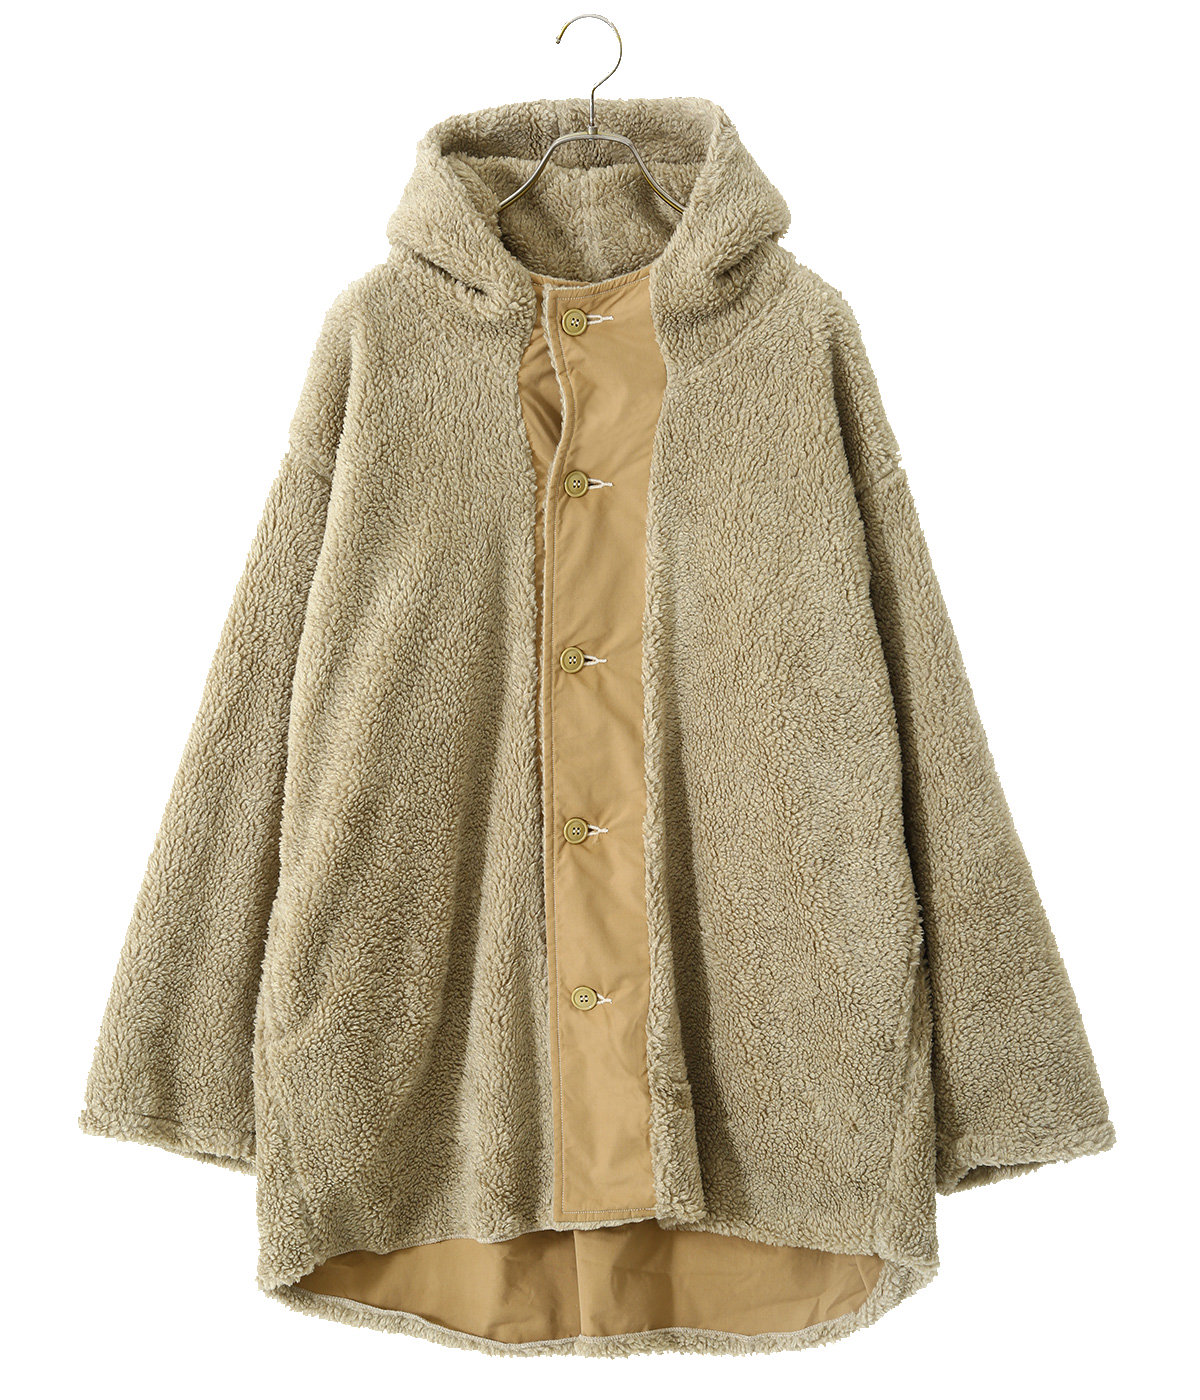 【予約】BOA FLEECE M-43 LINER JACKET